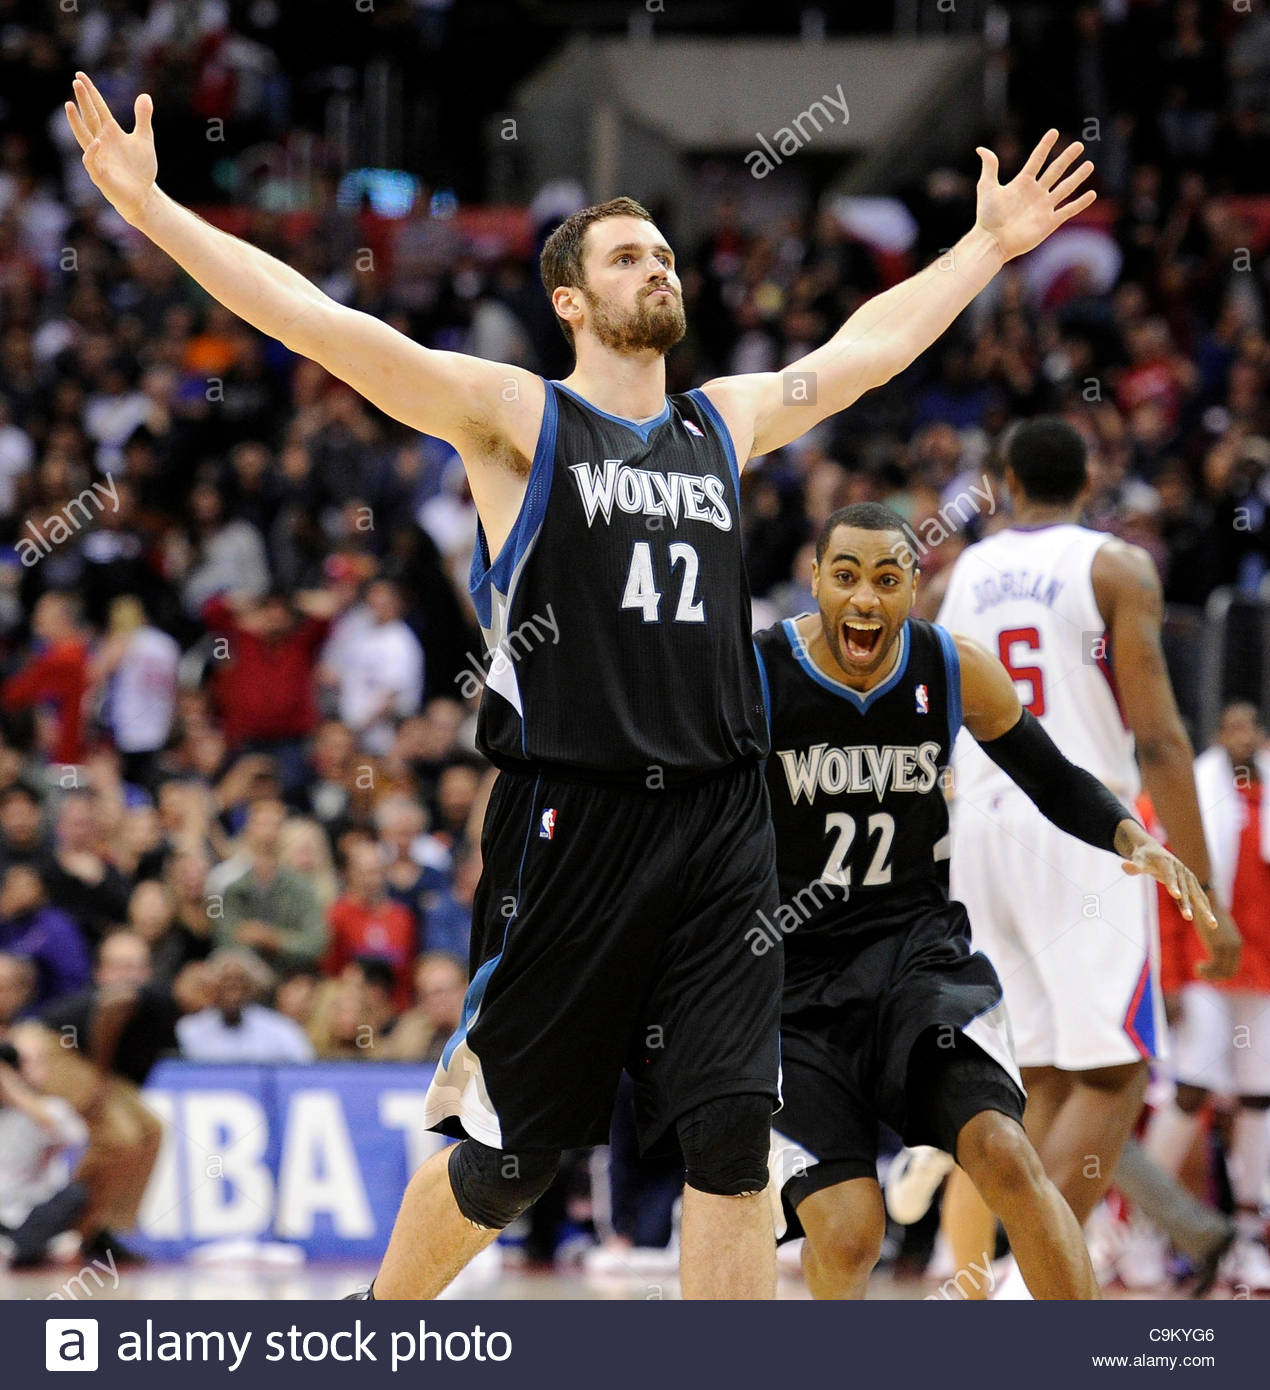 The Timberwolves Kevin Love 42 Raises His Arms In The Air After